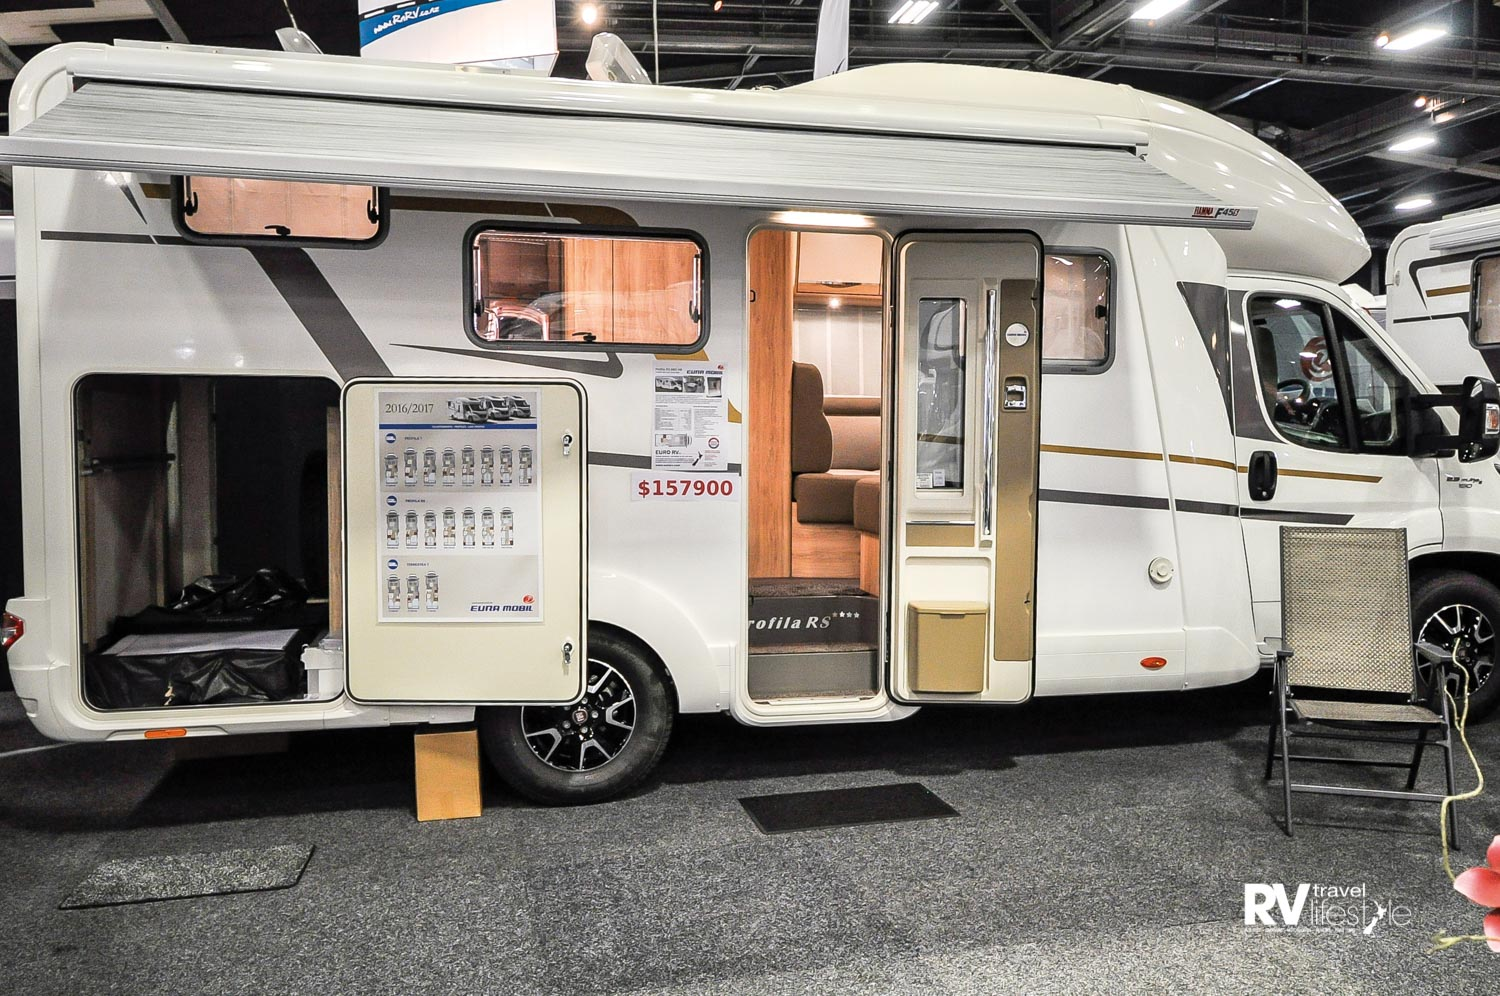 The Profila RS 660 HB display at the Classic Events Motorhome Show